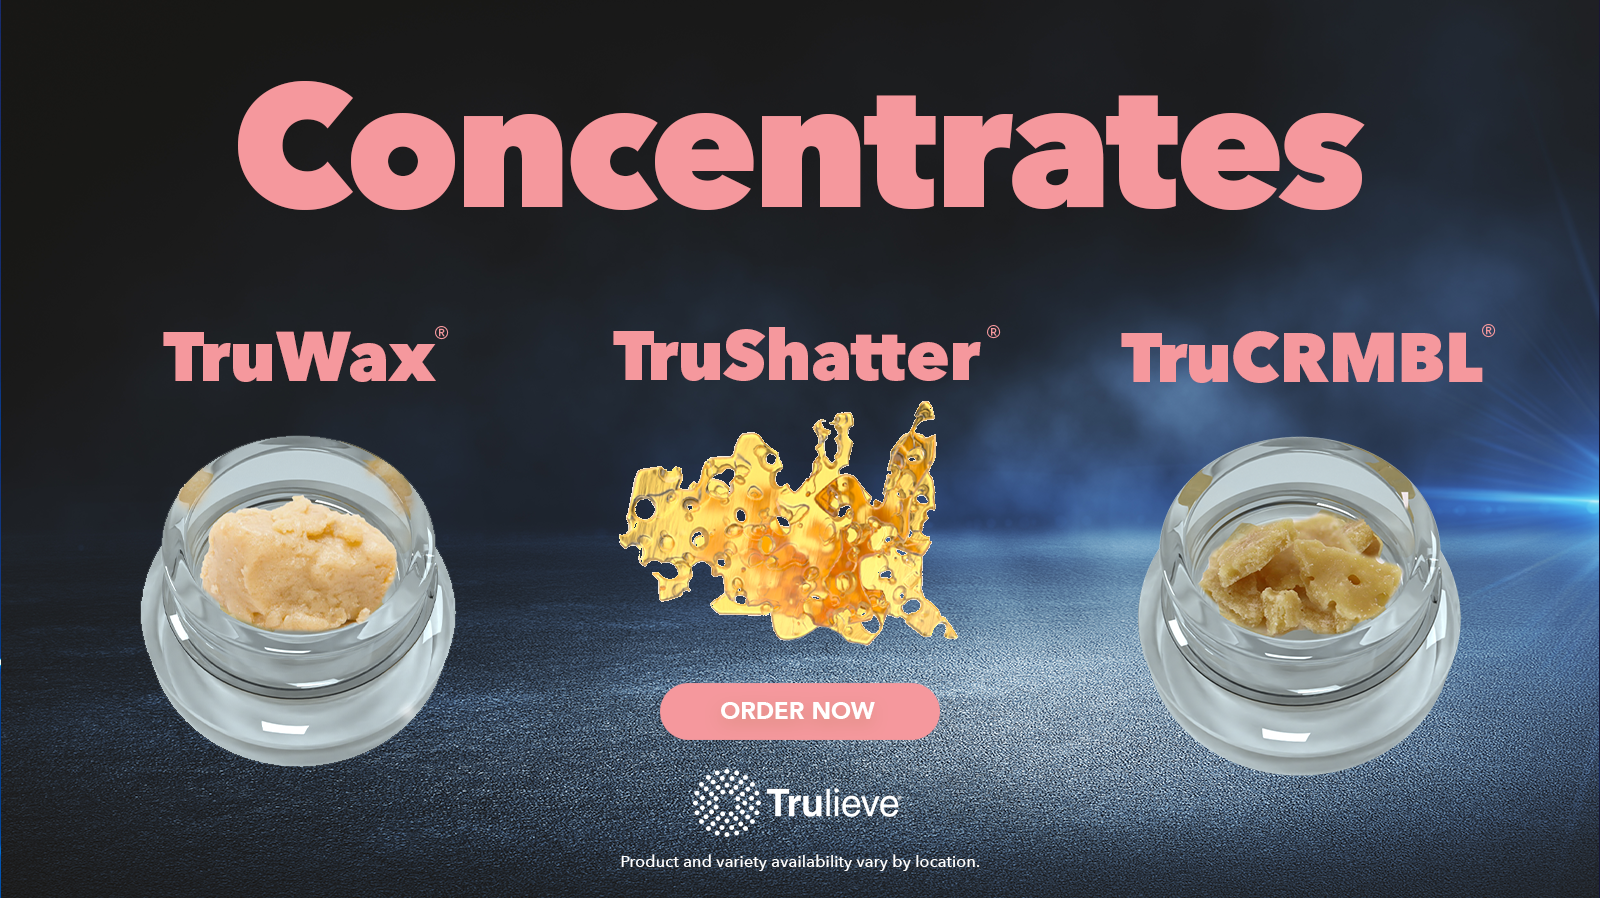 04/08 Concentrates